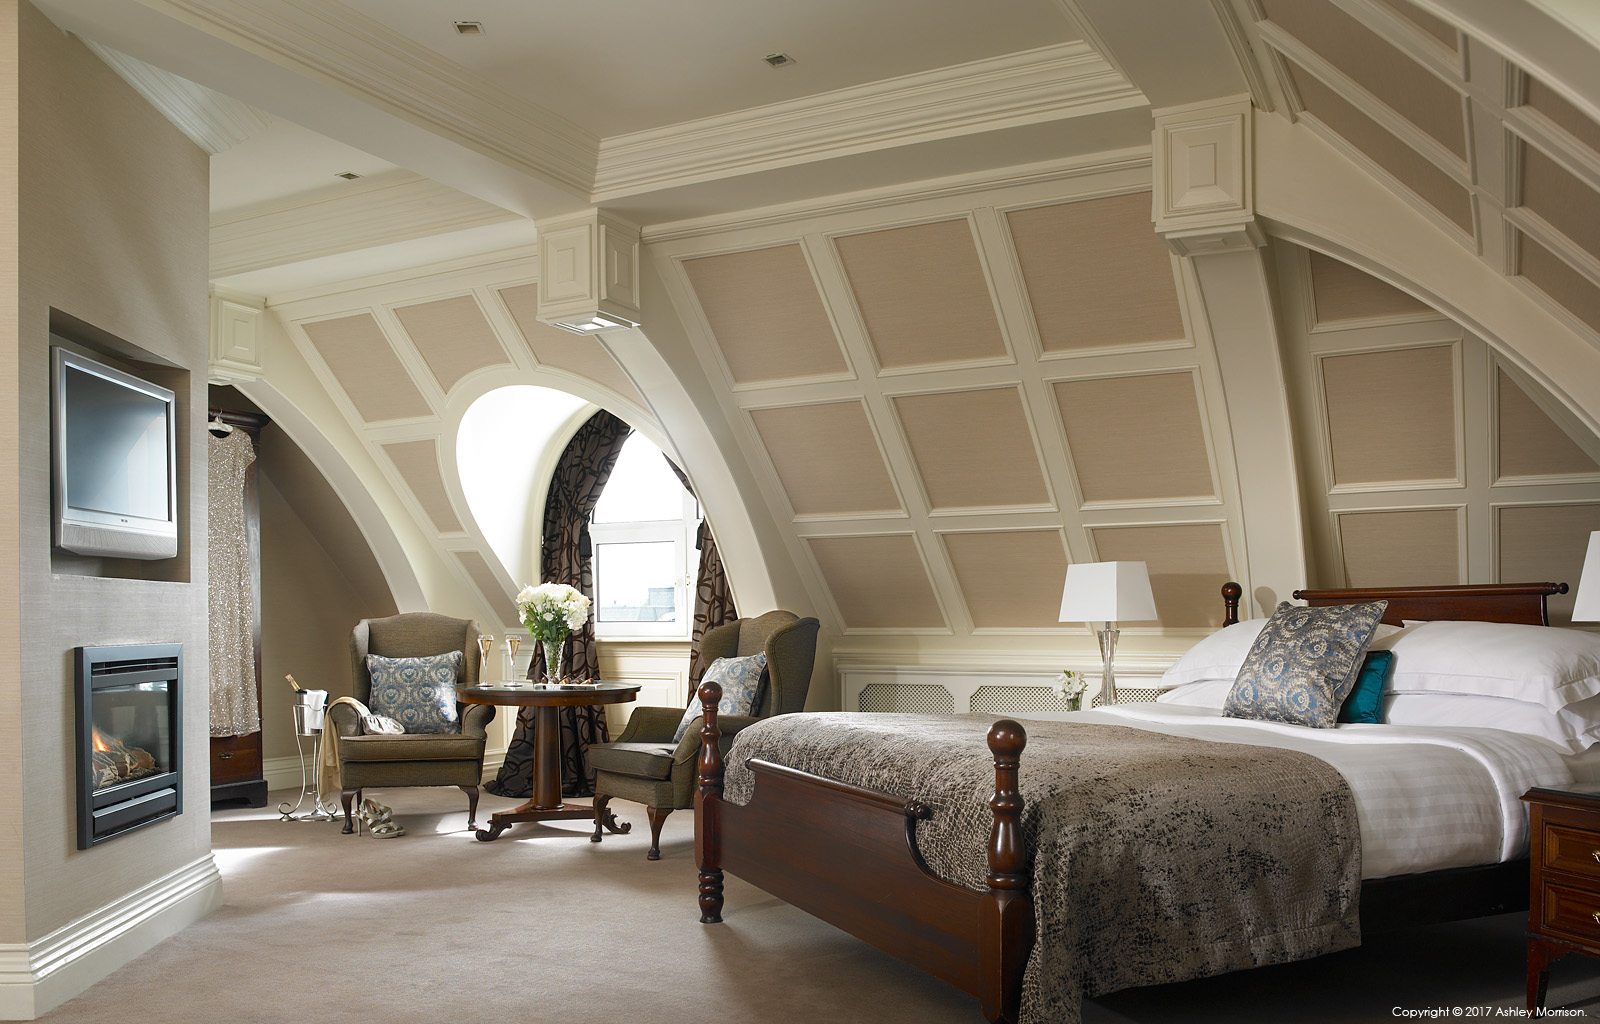 The Killarney bedroom Suite in the Killarney Park Hotel in the Irish County of Kerry.